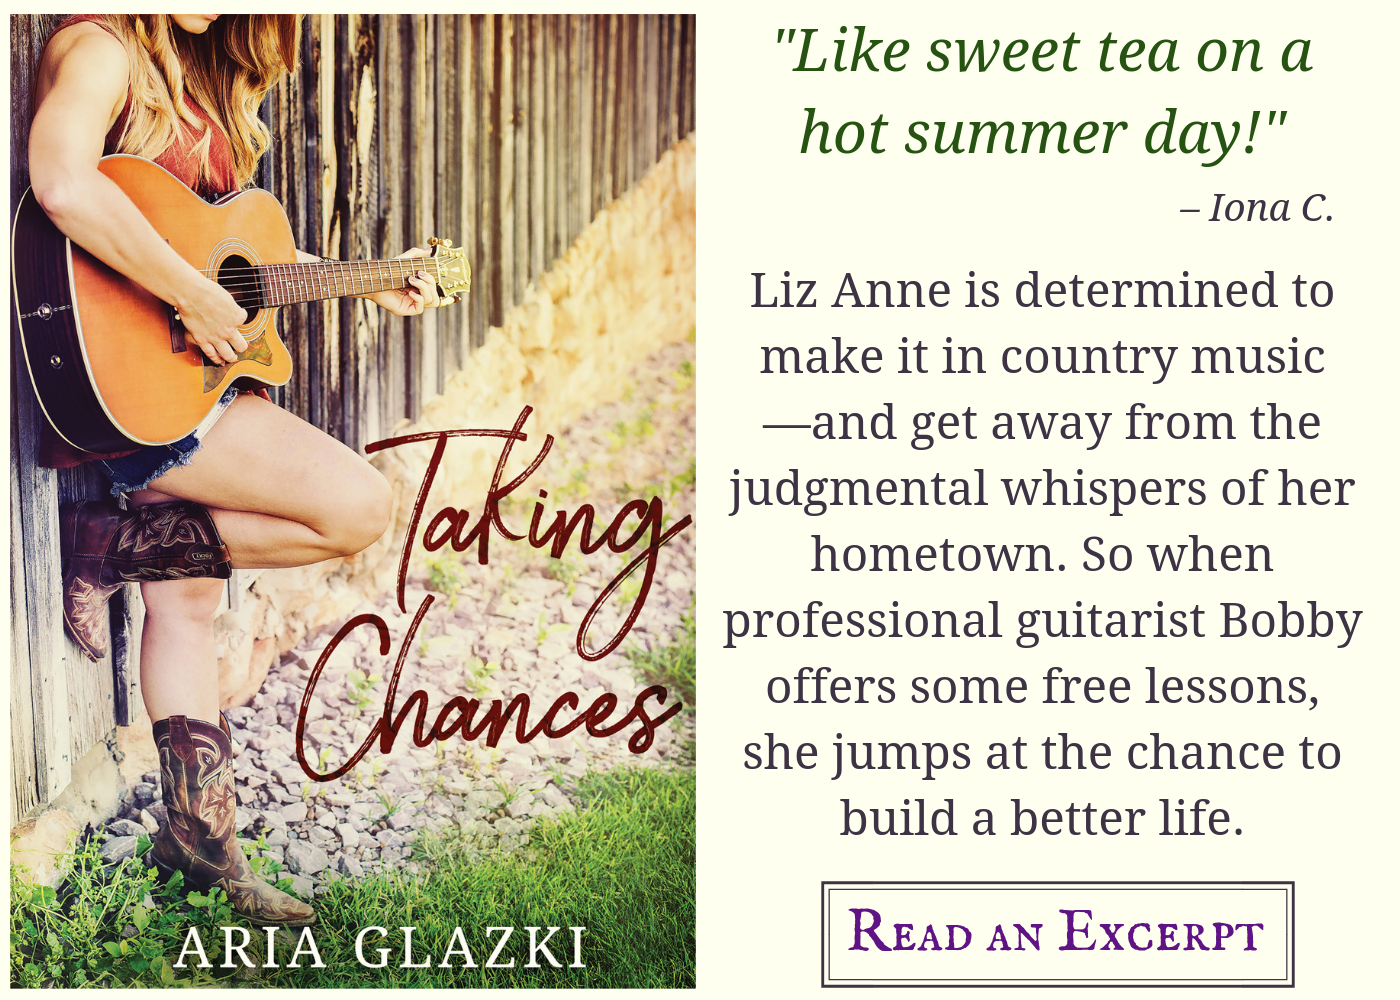 "Image card for Taking Chances by Aria Glazki, featuring book cover and text: ""Like sweet tea on a hot summer day!"" —Iona C. Liz Anne is determined to make it in country music—and get away from the judgmental whispers of her hometown. So when professional guitarist Bobby offers some free lessons, she jumps at the chance to build a better life. Read an excerpt."